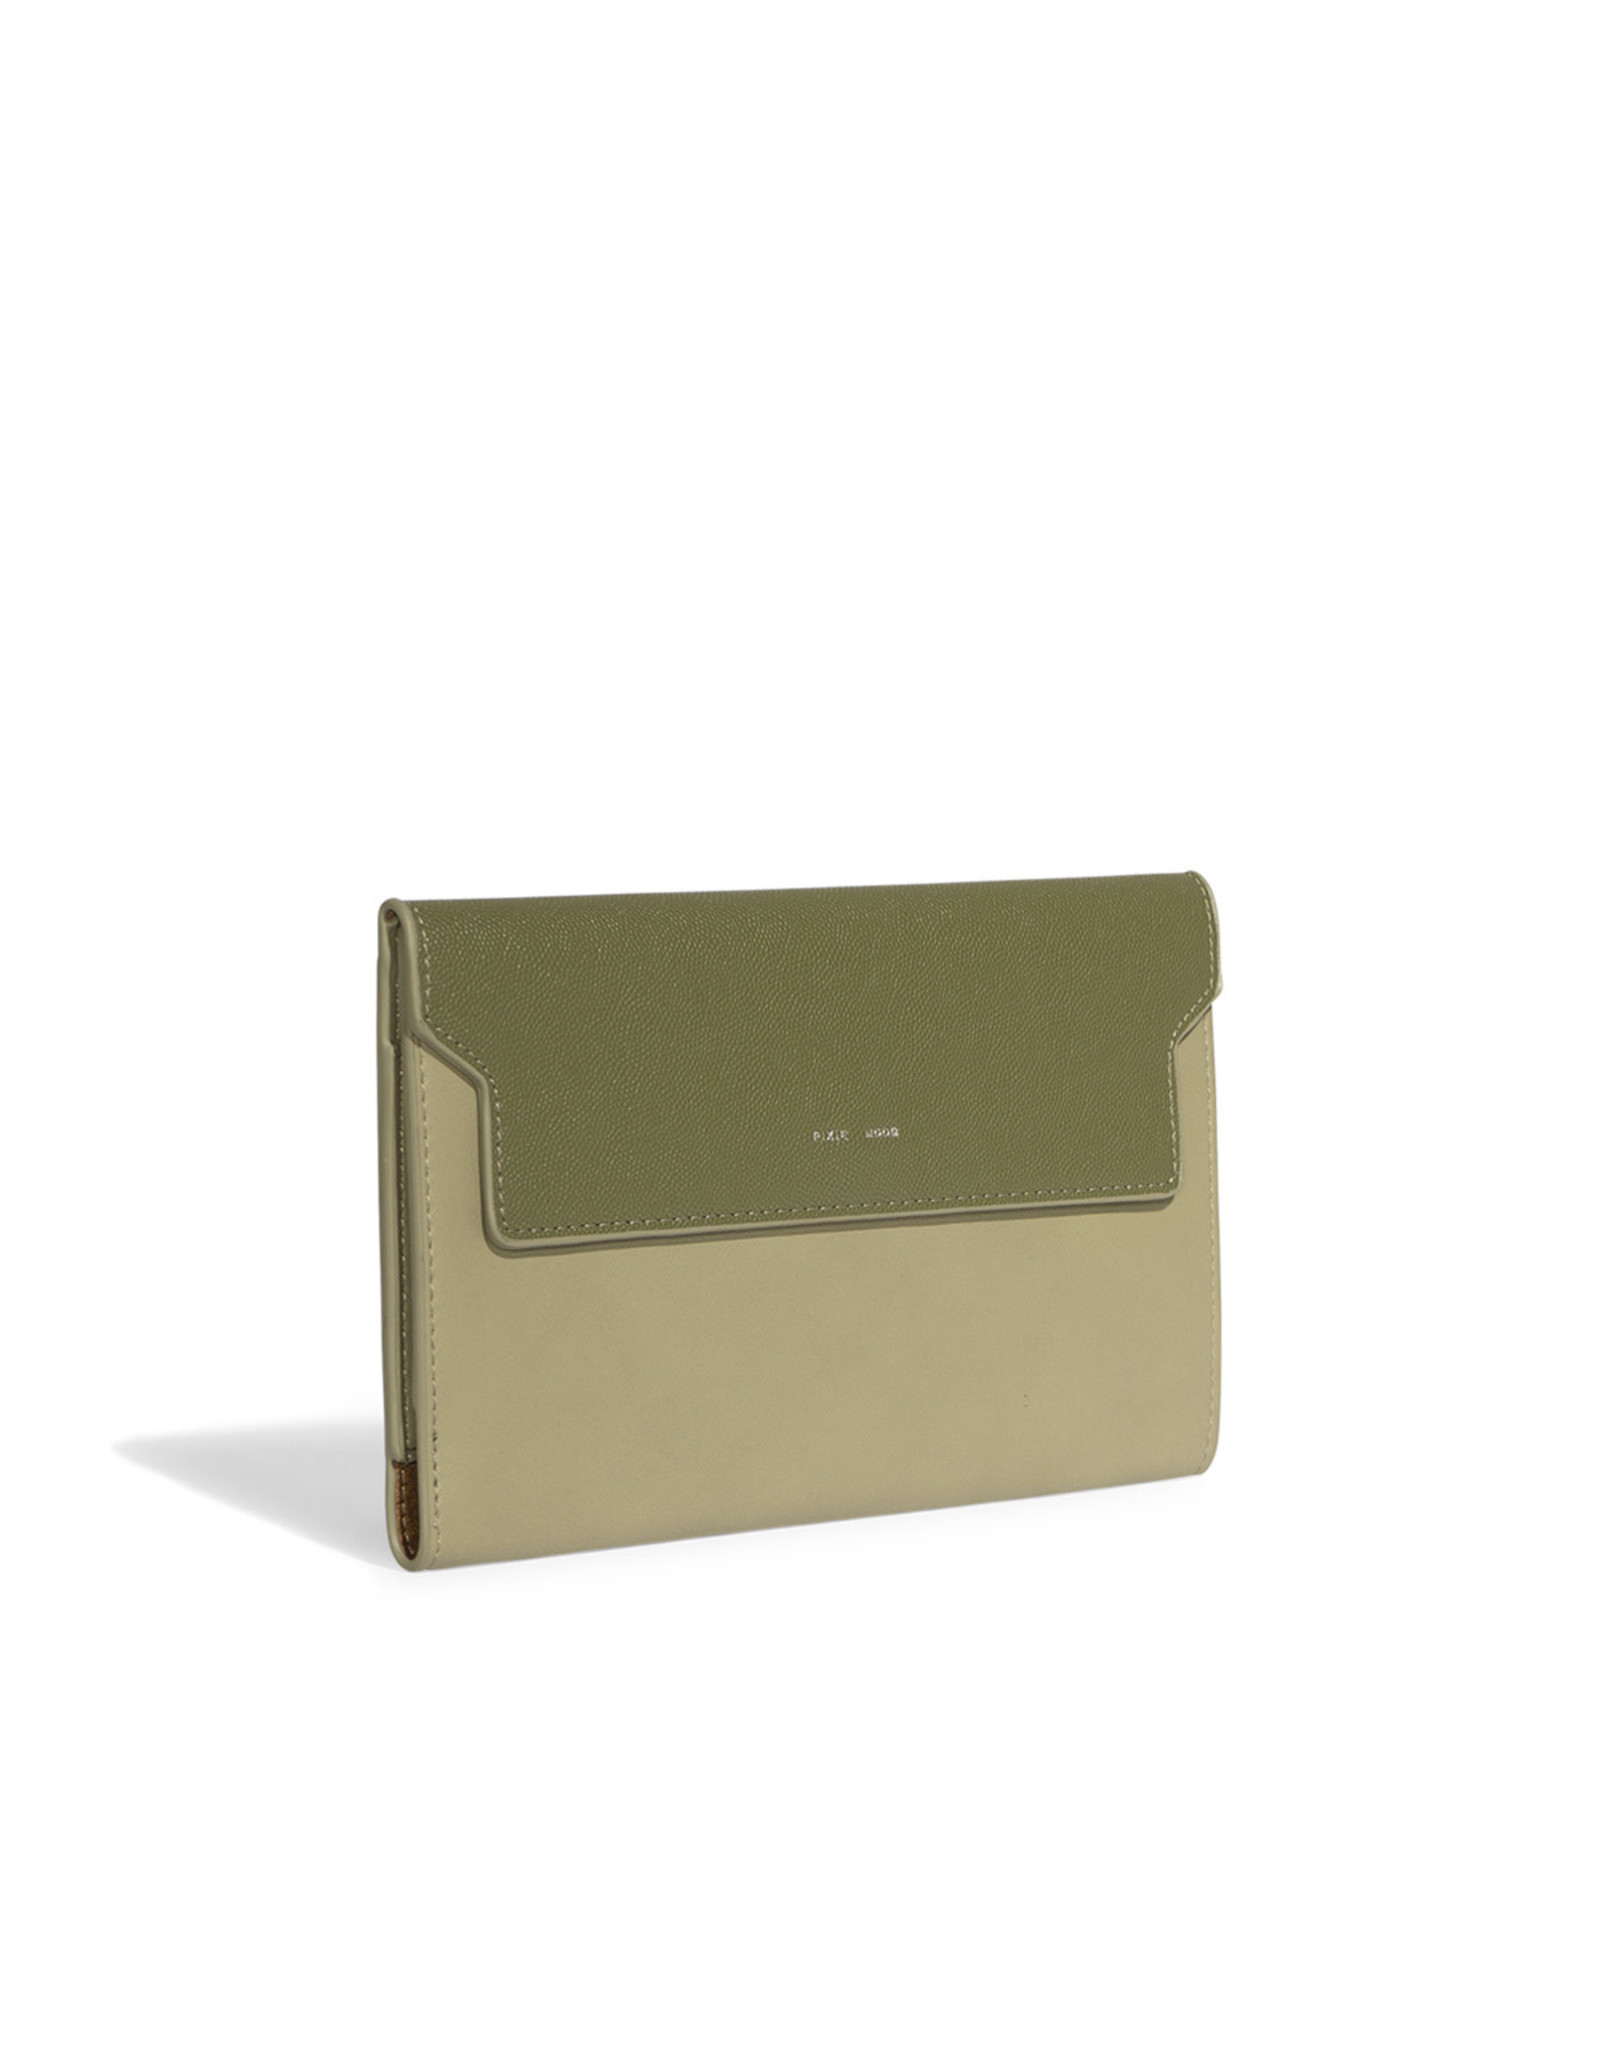 Pixie Mood Pixie Mood - Bianca Travel Organizer Sage